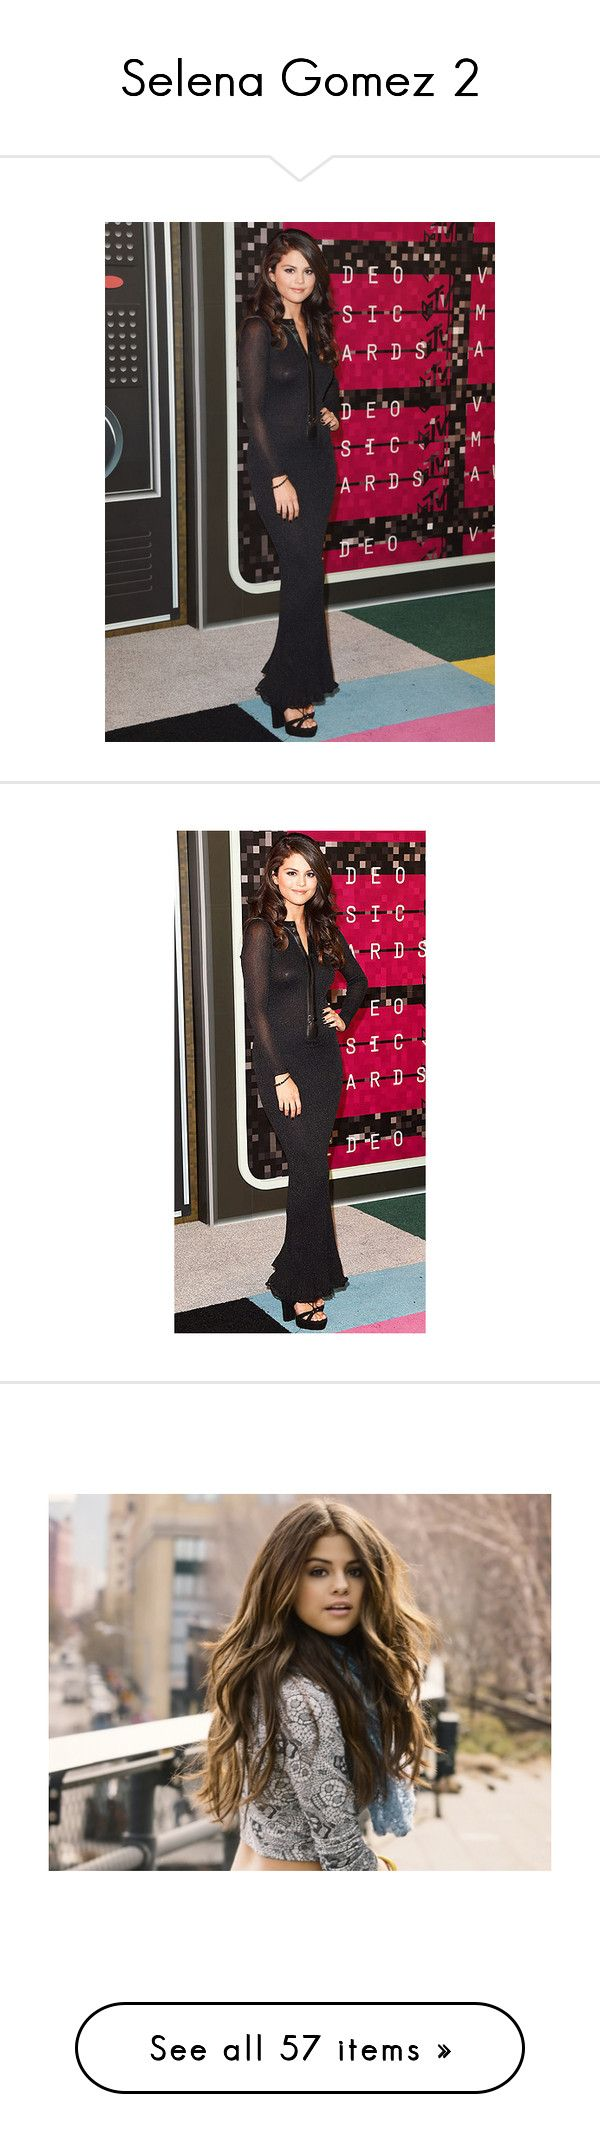 """Selena Gomez 2"" by croonessii ❤ liked on Polyvore featuring selena gomez, people, selena, hair, pictures, black&white, dresses, red carpet, beauty products and haircare"